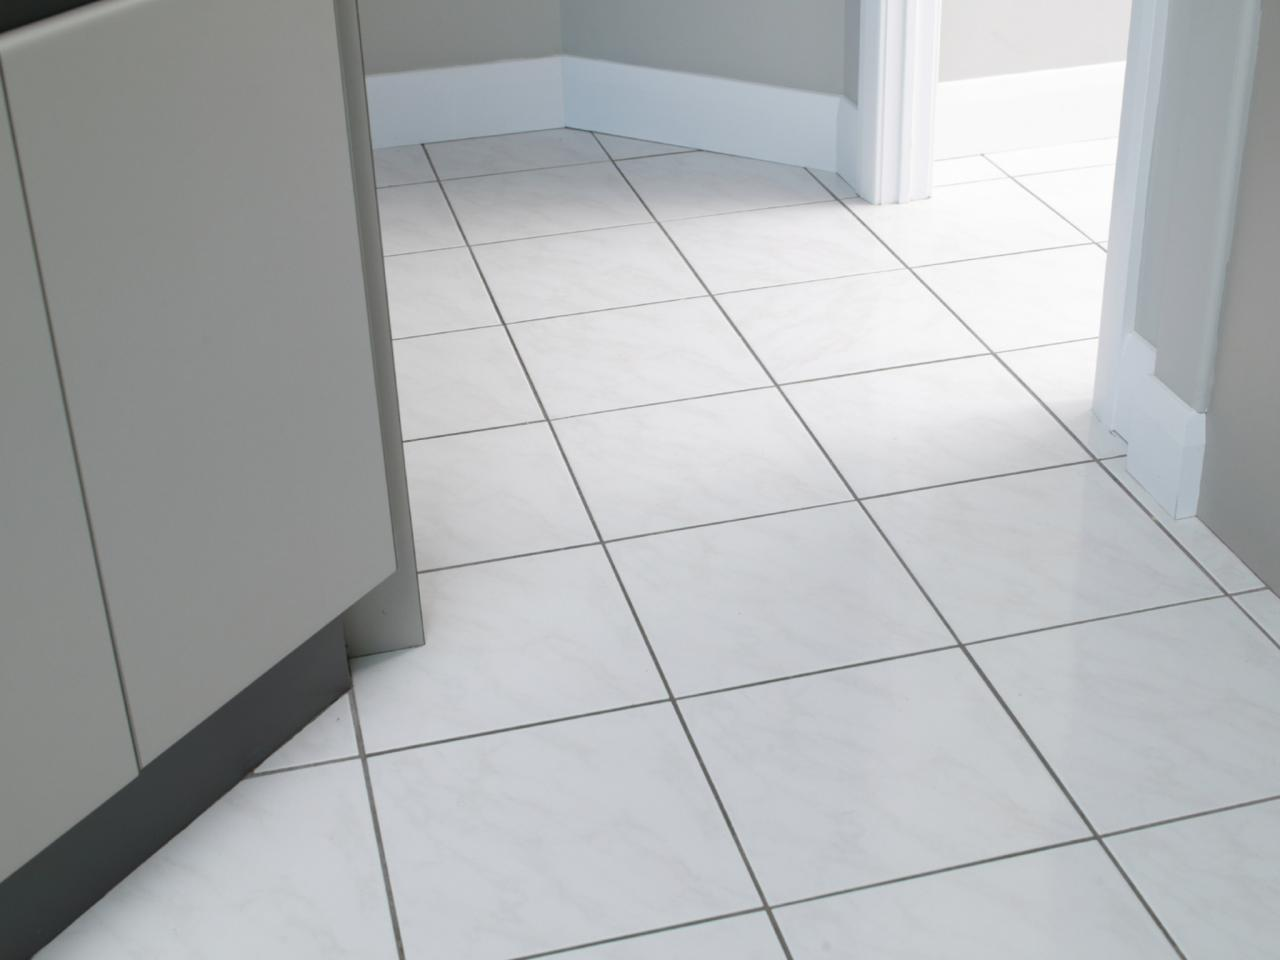 4 Ways to Take Care of Our Ceramic Tiles